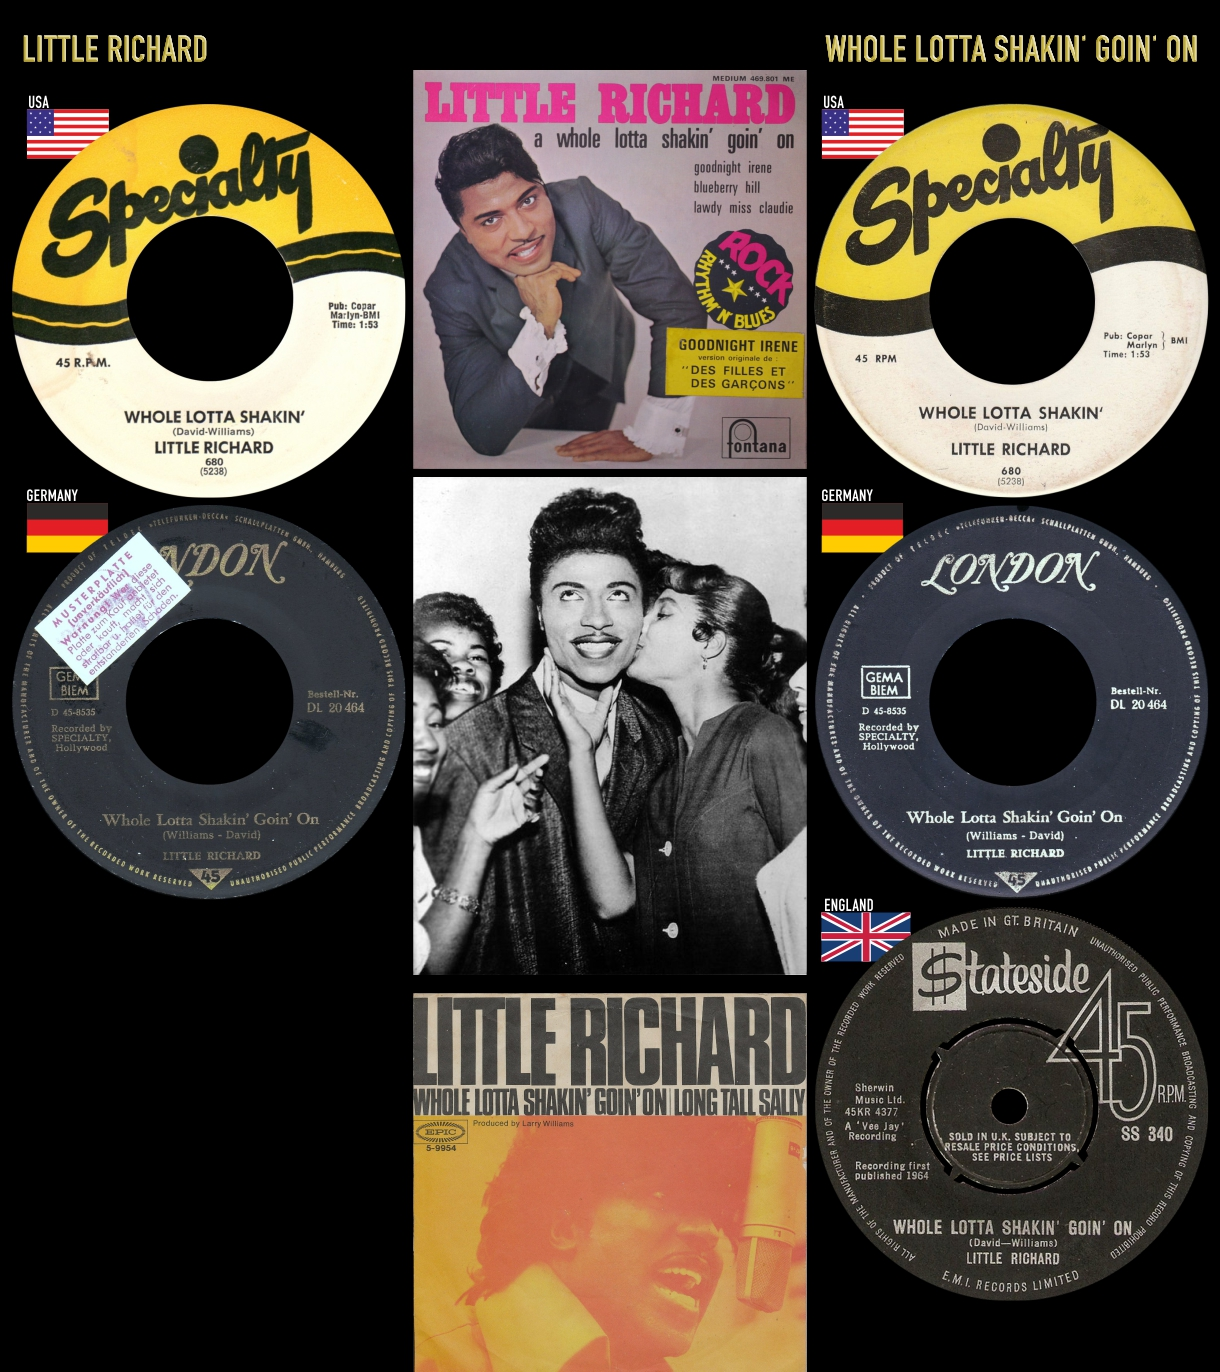 571019_Little Richard_Whole Lotta Shakin' Goin' On_#